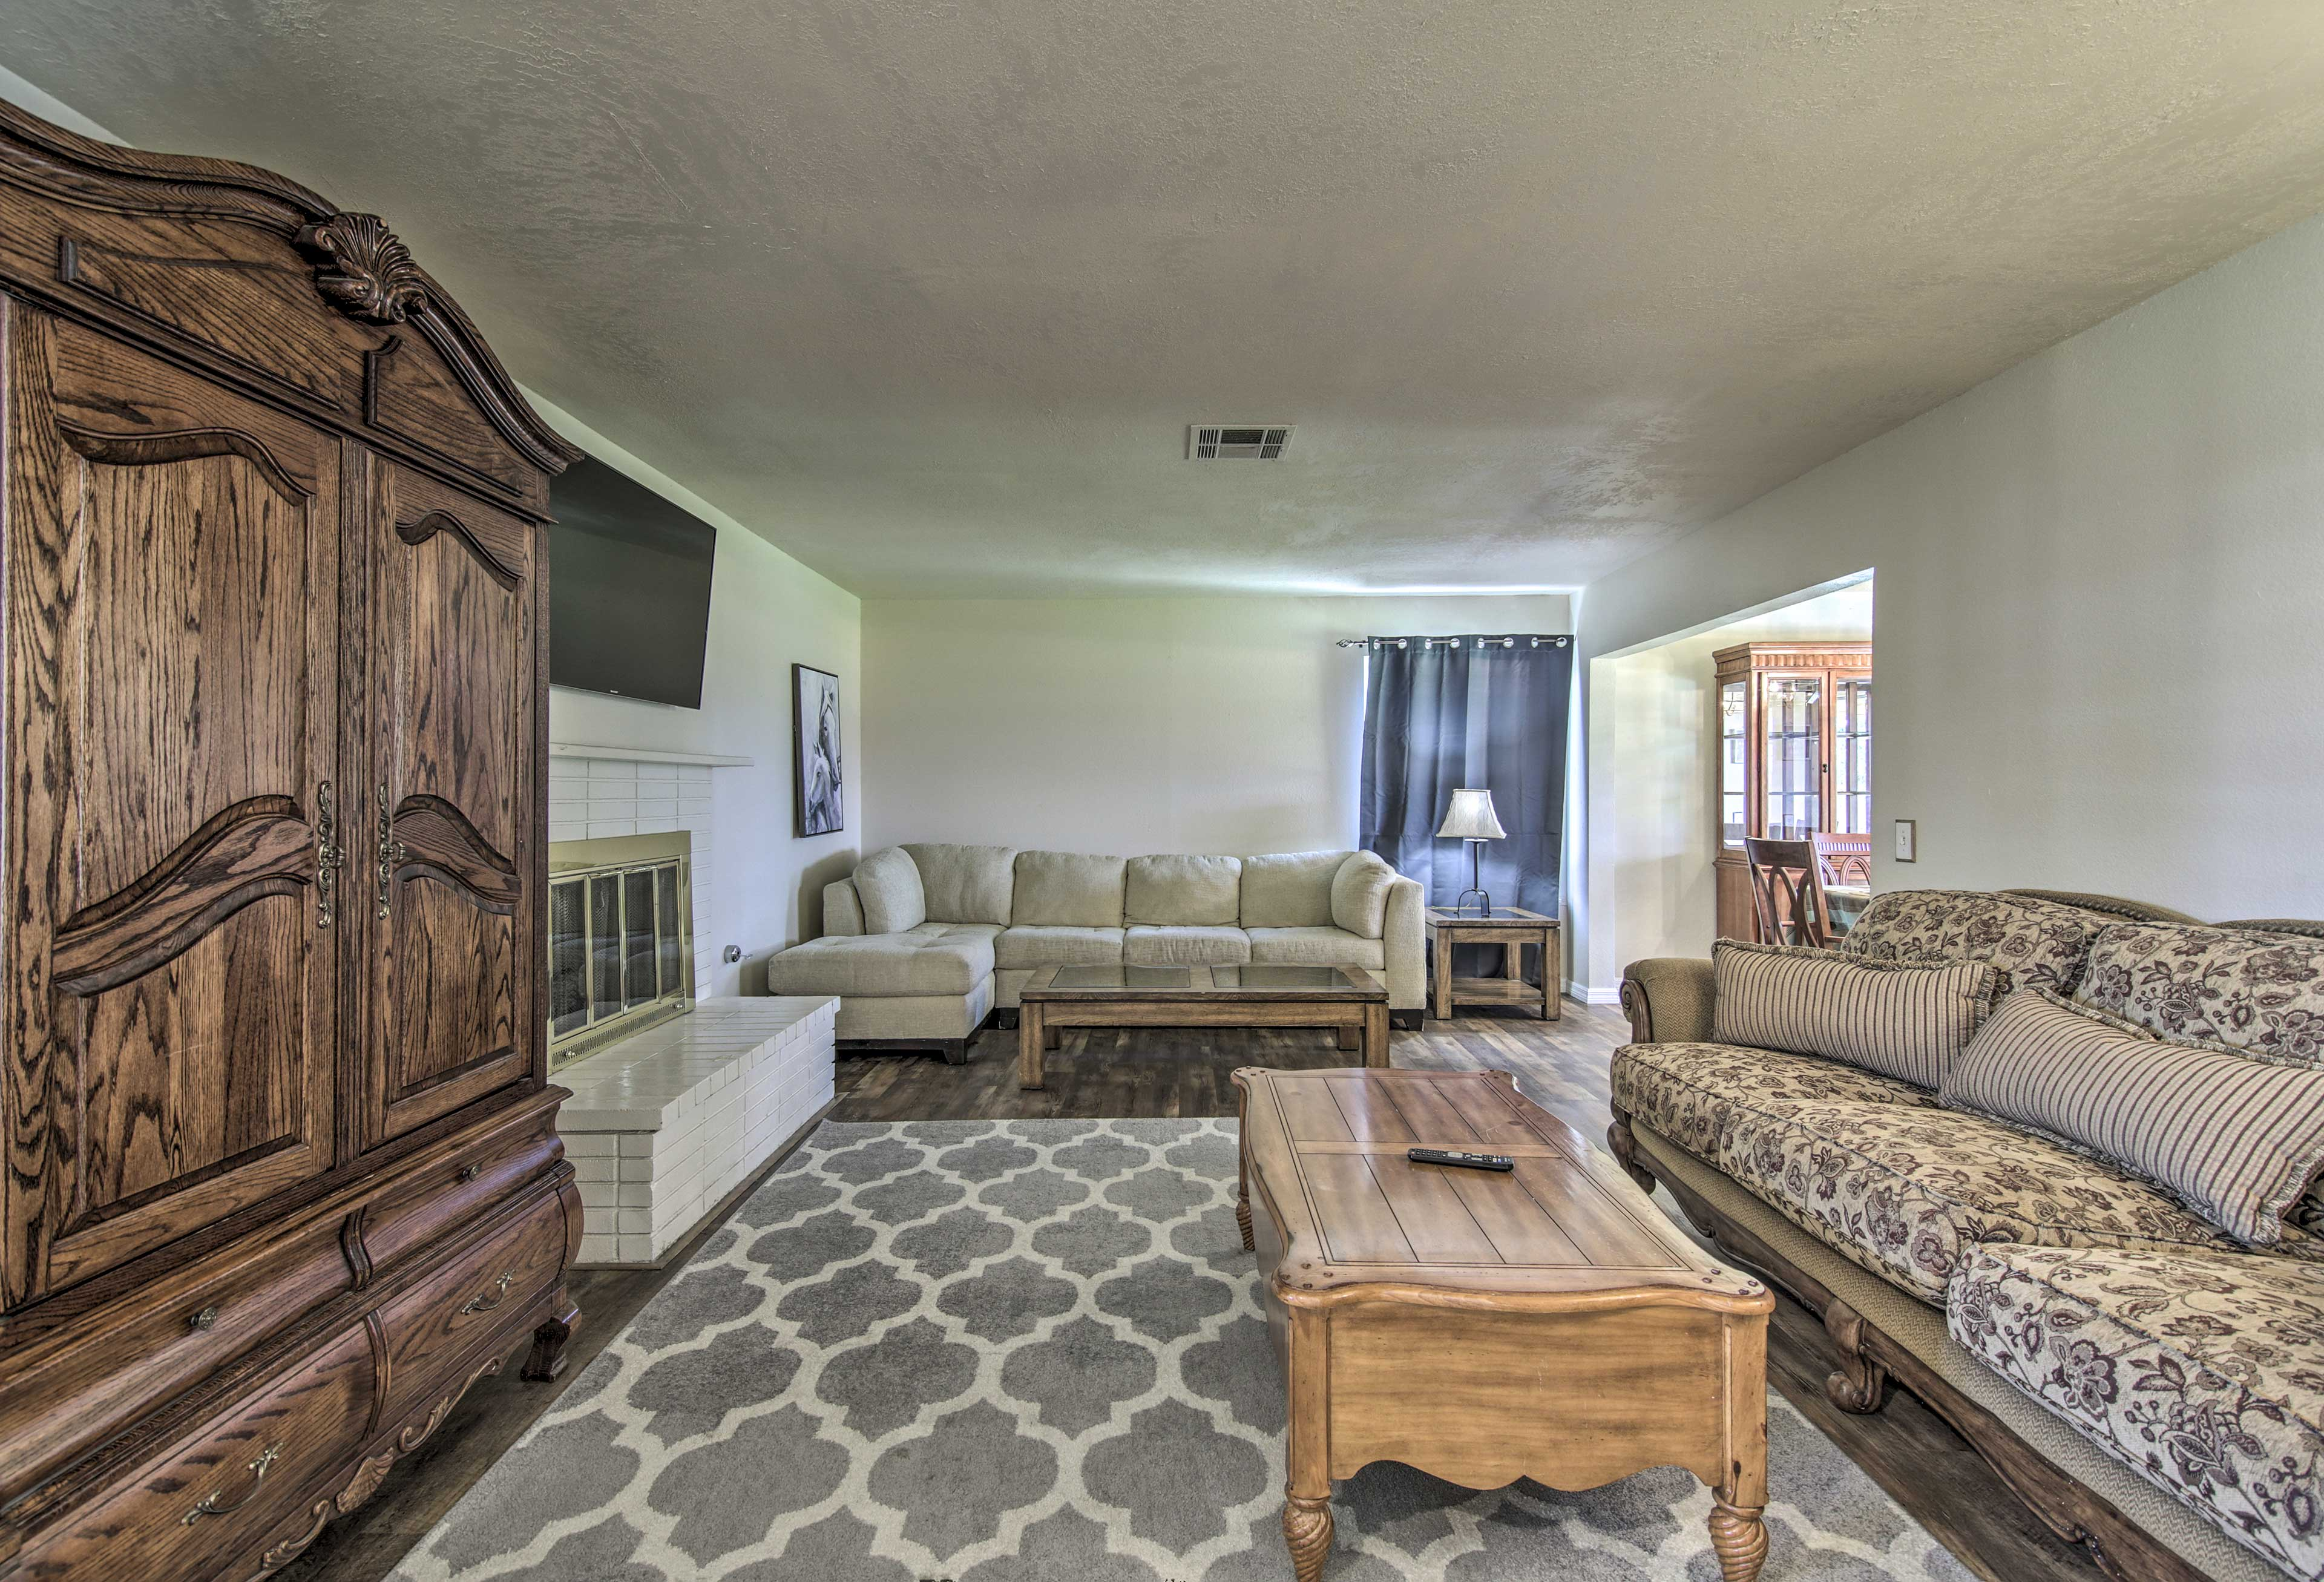 The living room features a wood-burning fireplace and flat-screen TV.